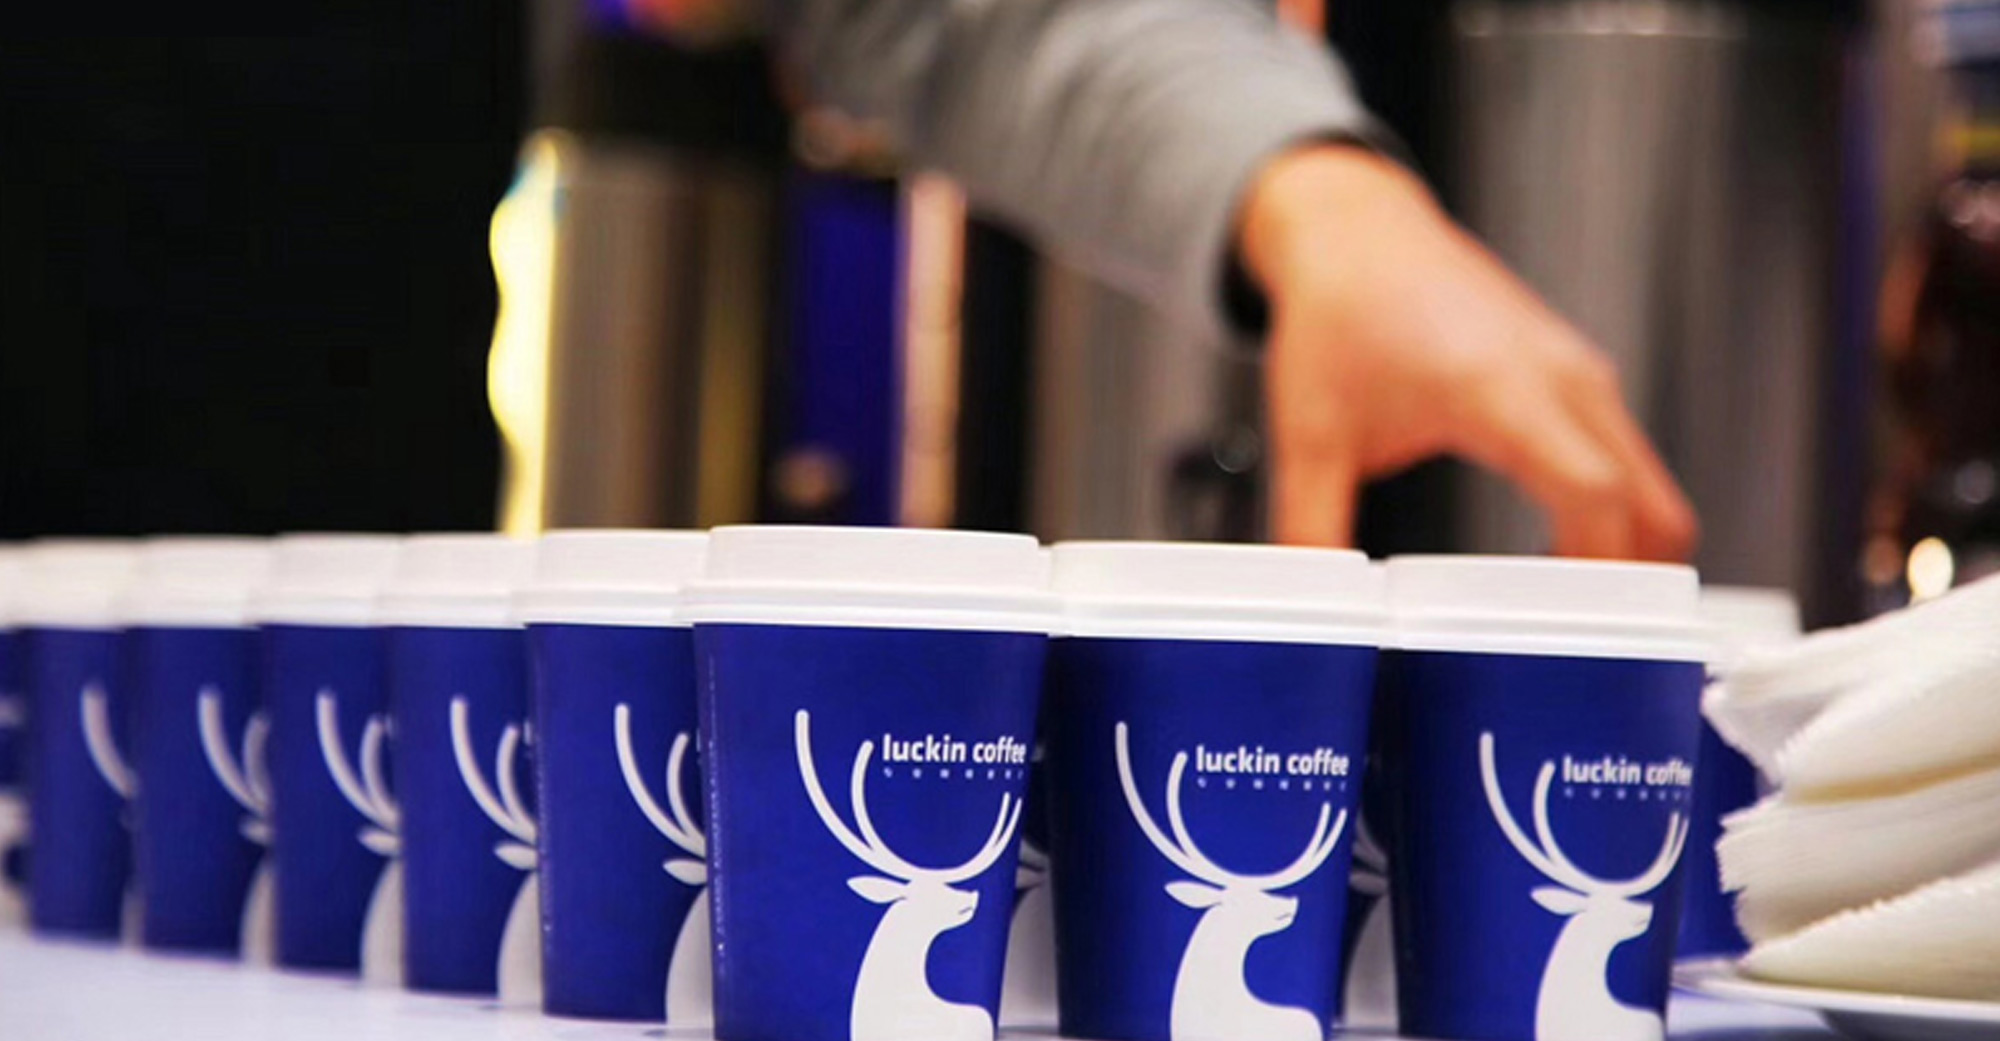 Luckin Coffee's Digital-First Strategy to Beat Starbucks